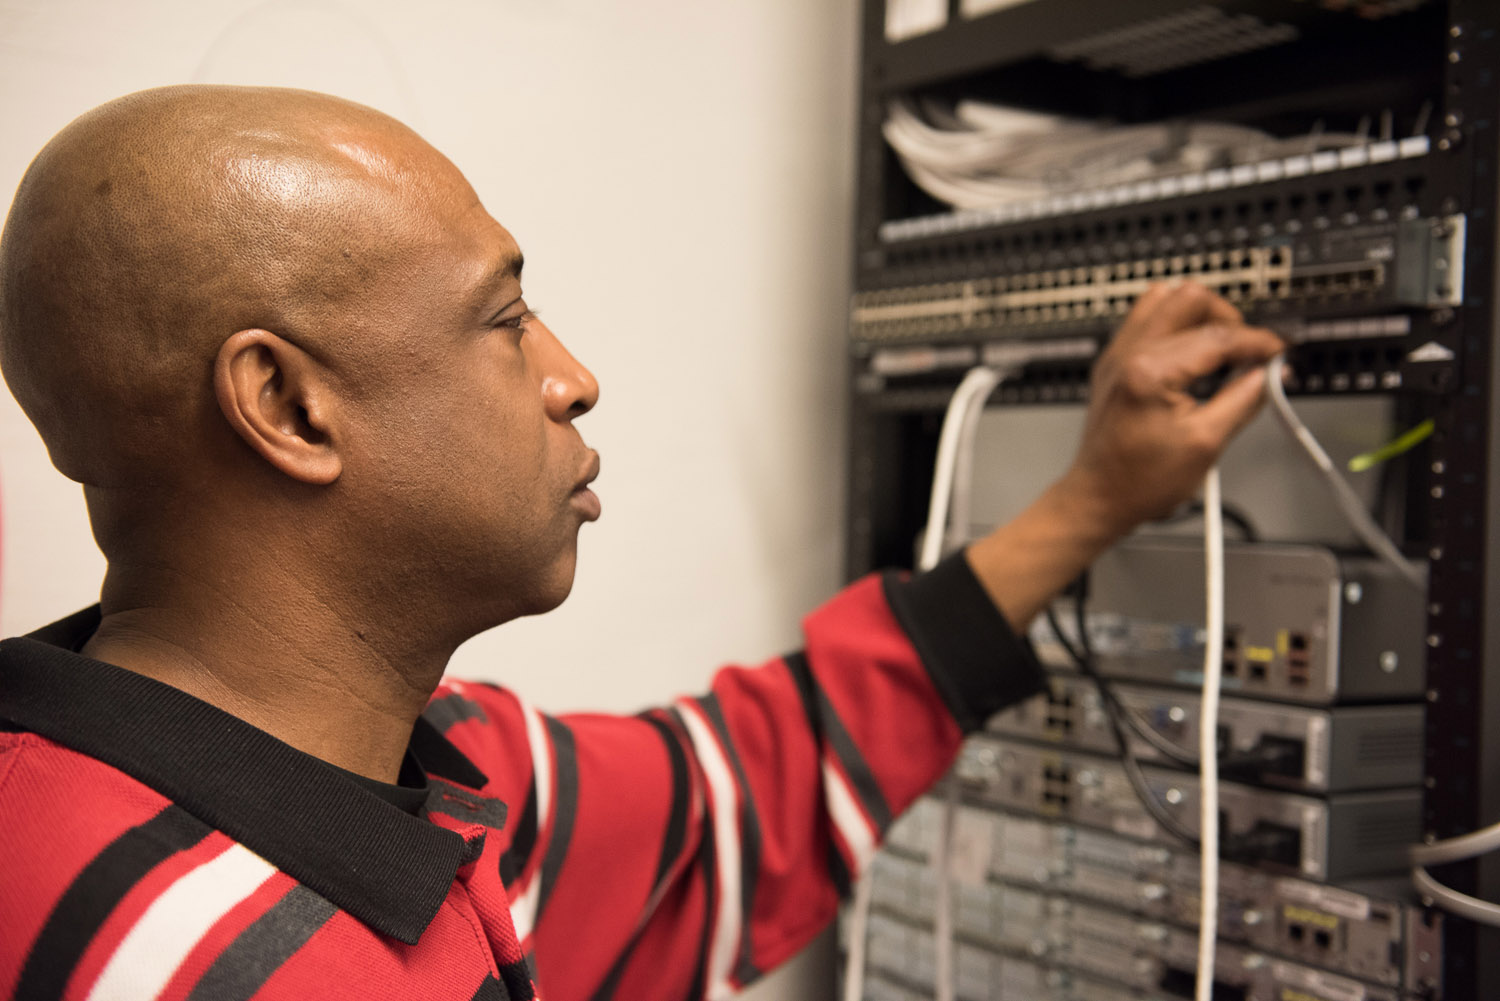 BAS in IT Networking student at Seattle Central College